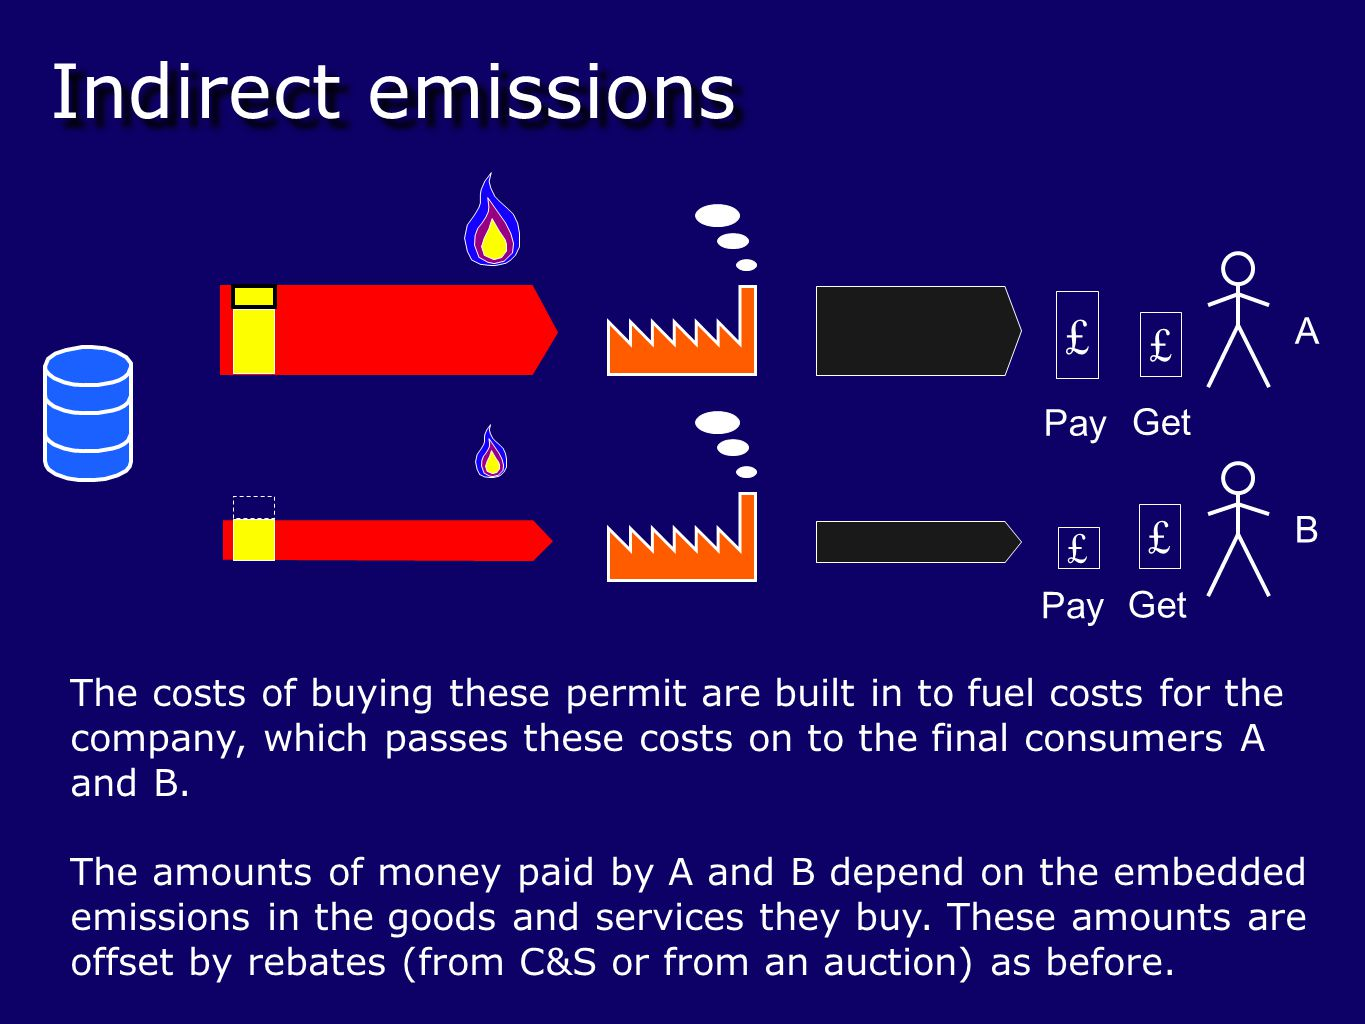 The costs of buying these permit are built in to fuel costs for the company, which passes these costs on to the final consumers A and B.